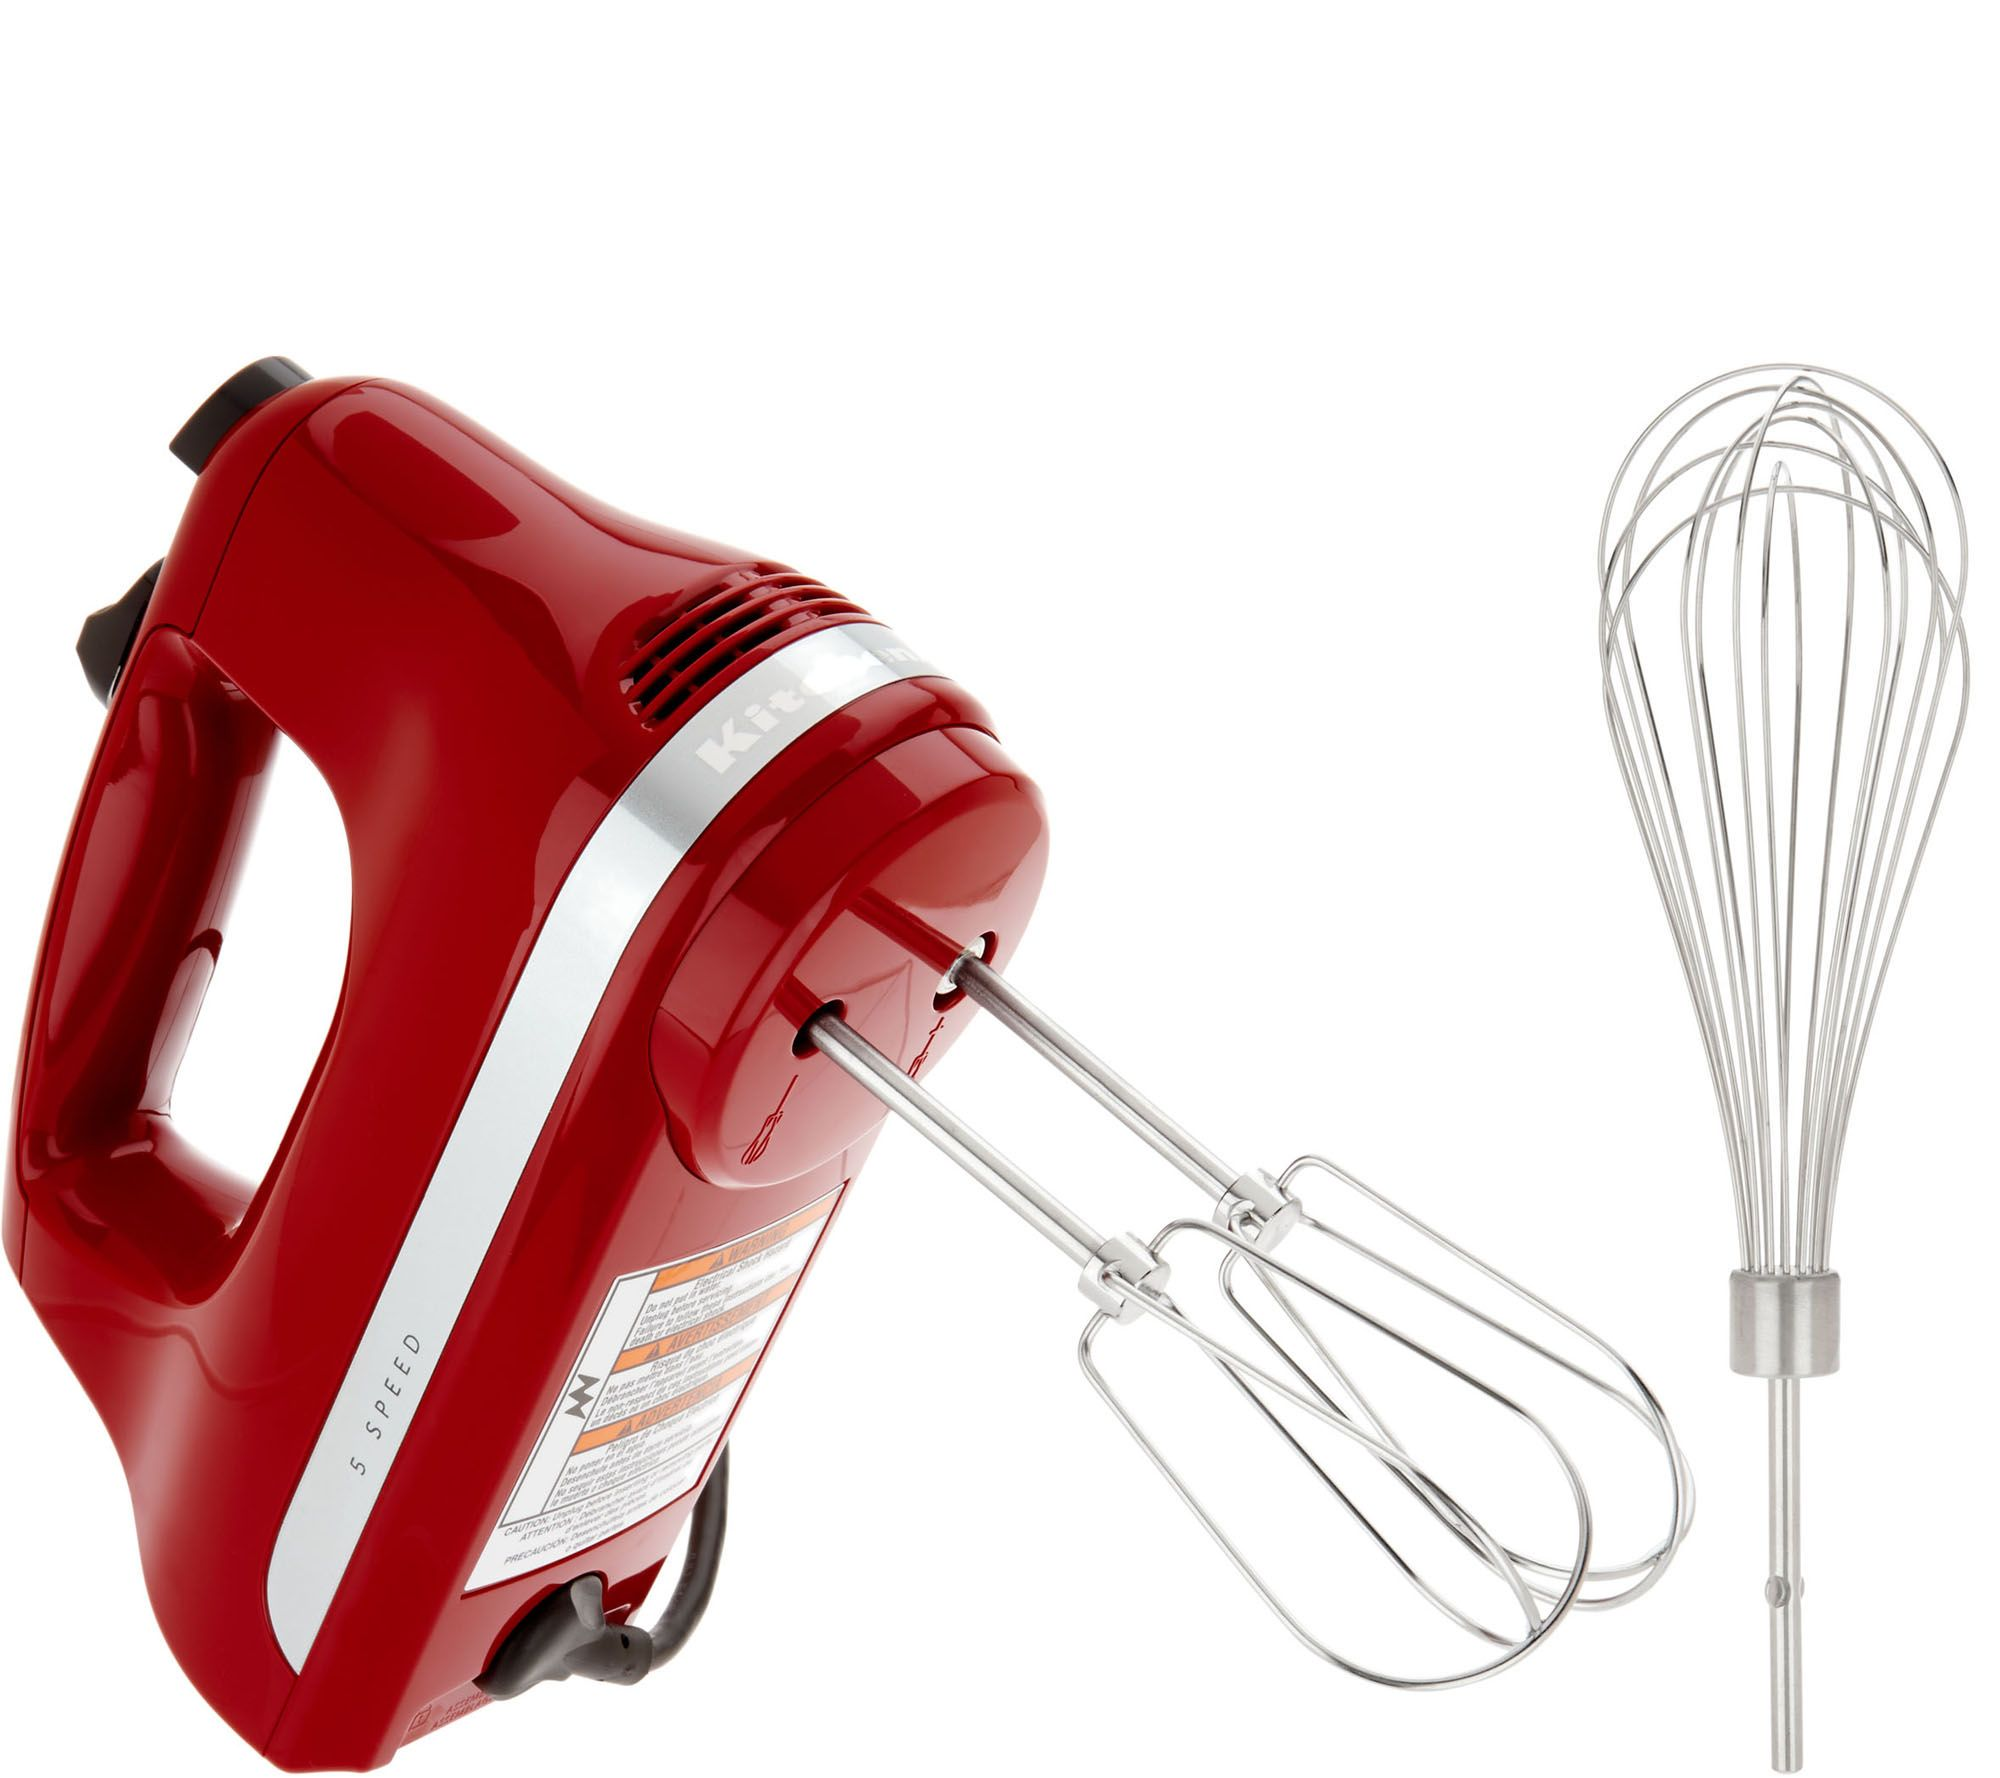 KitchenAid 5 Speed Ultra Power Hand Mixer w Wire Pro Whisk Page